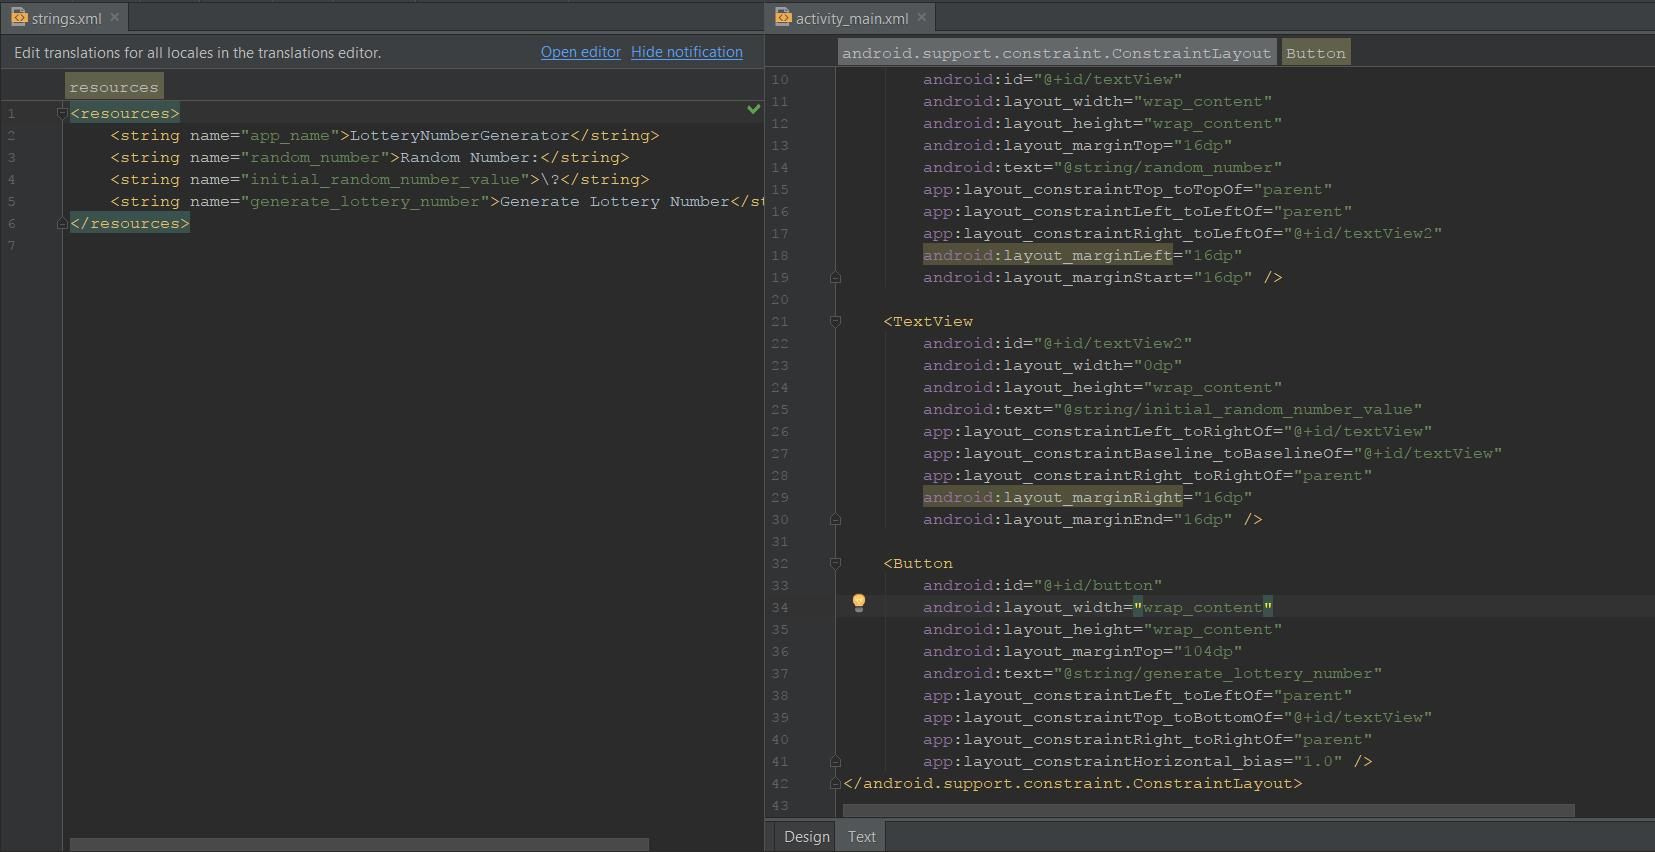 Extracted strings and layout XML side-by-side in Android Studio